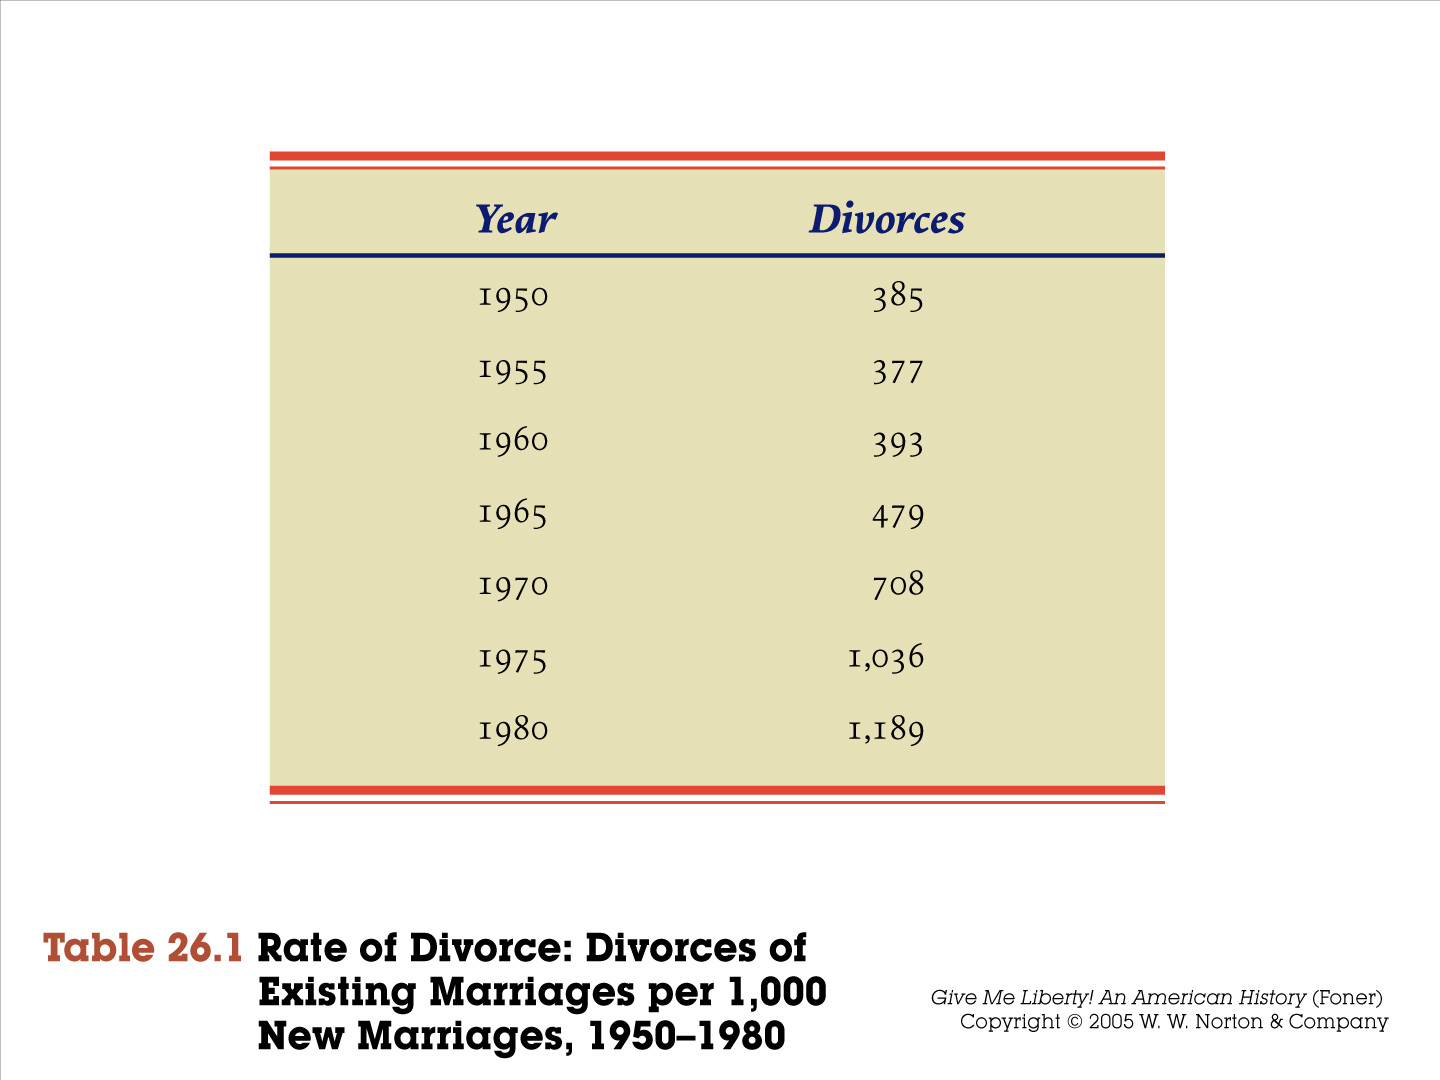 the causer for increasing divorce rate in vietnam Vietnam vets are homeless, addicted home » drawing awareness to other causes » vietnam vets—homeless and the divorce rate amongstvietnamveterans is above.